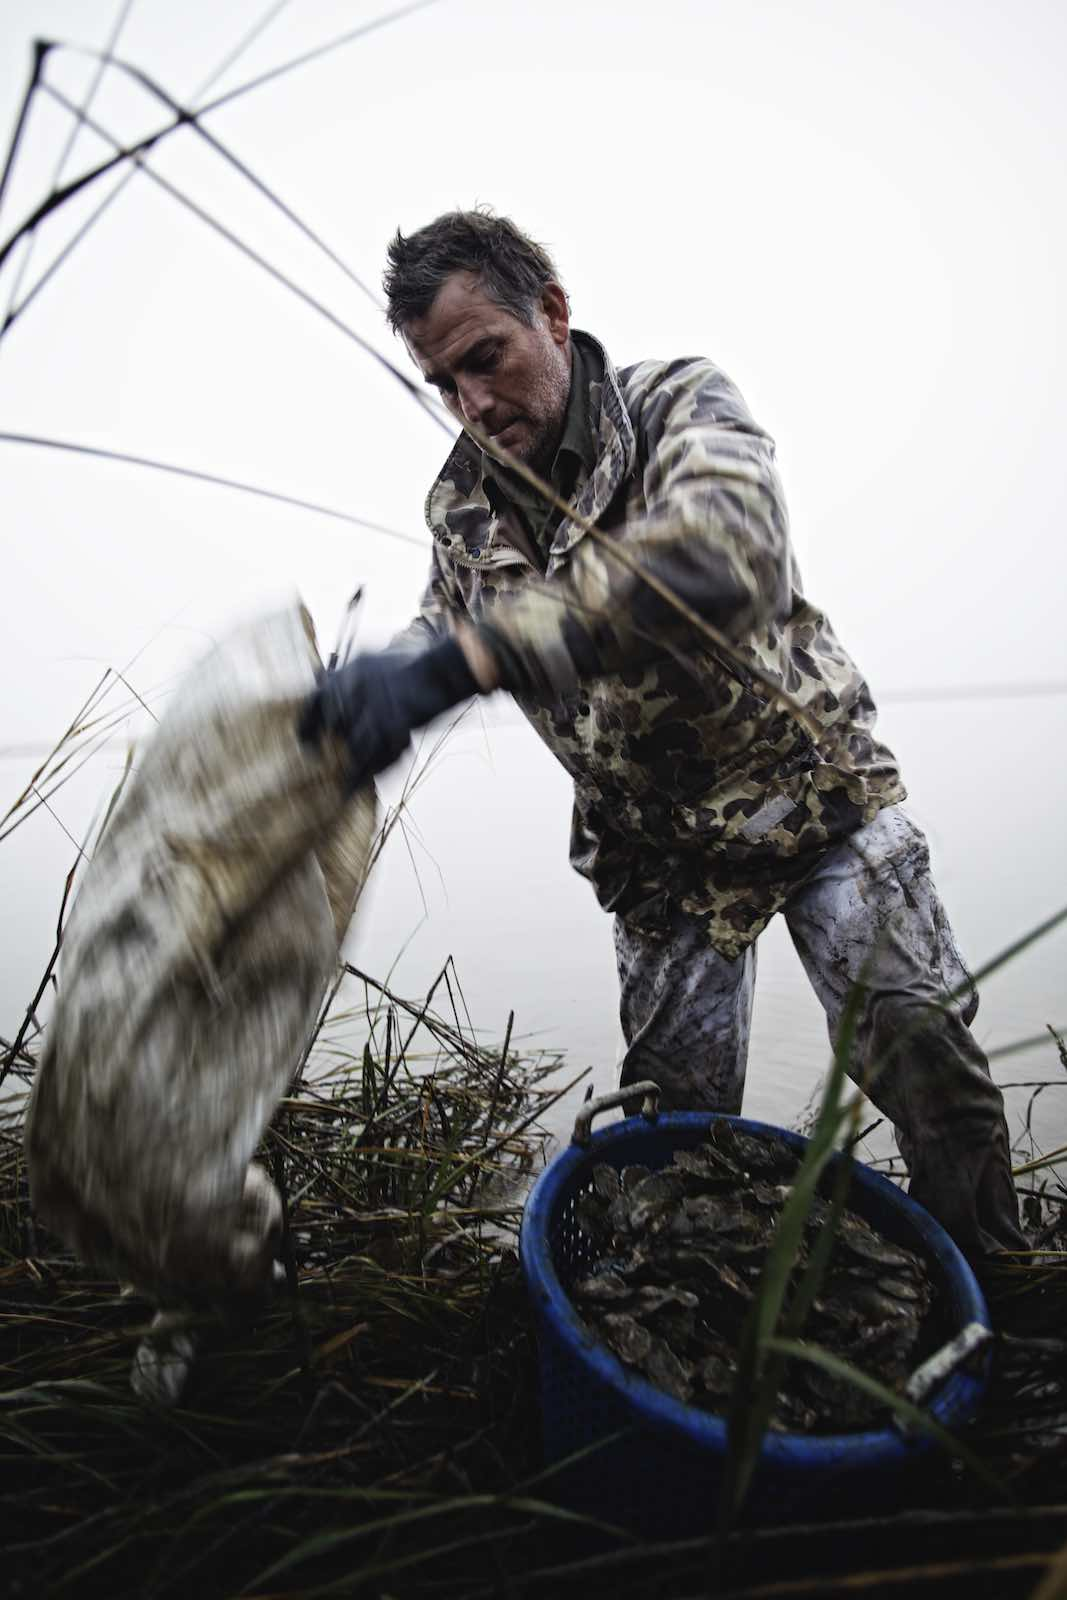 Jody Horton Photography - Fisherman and basket of oysters during oyster harvest.